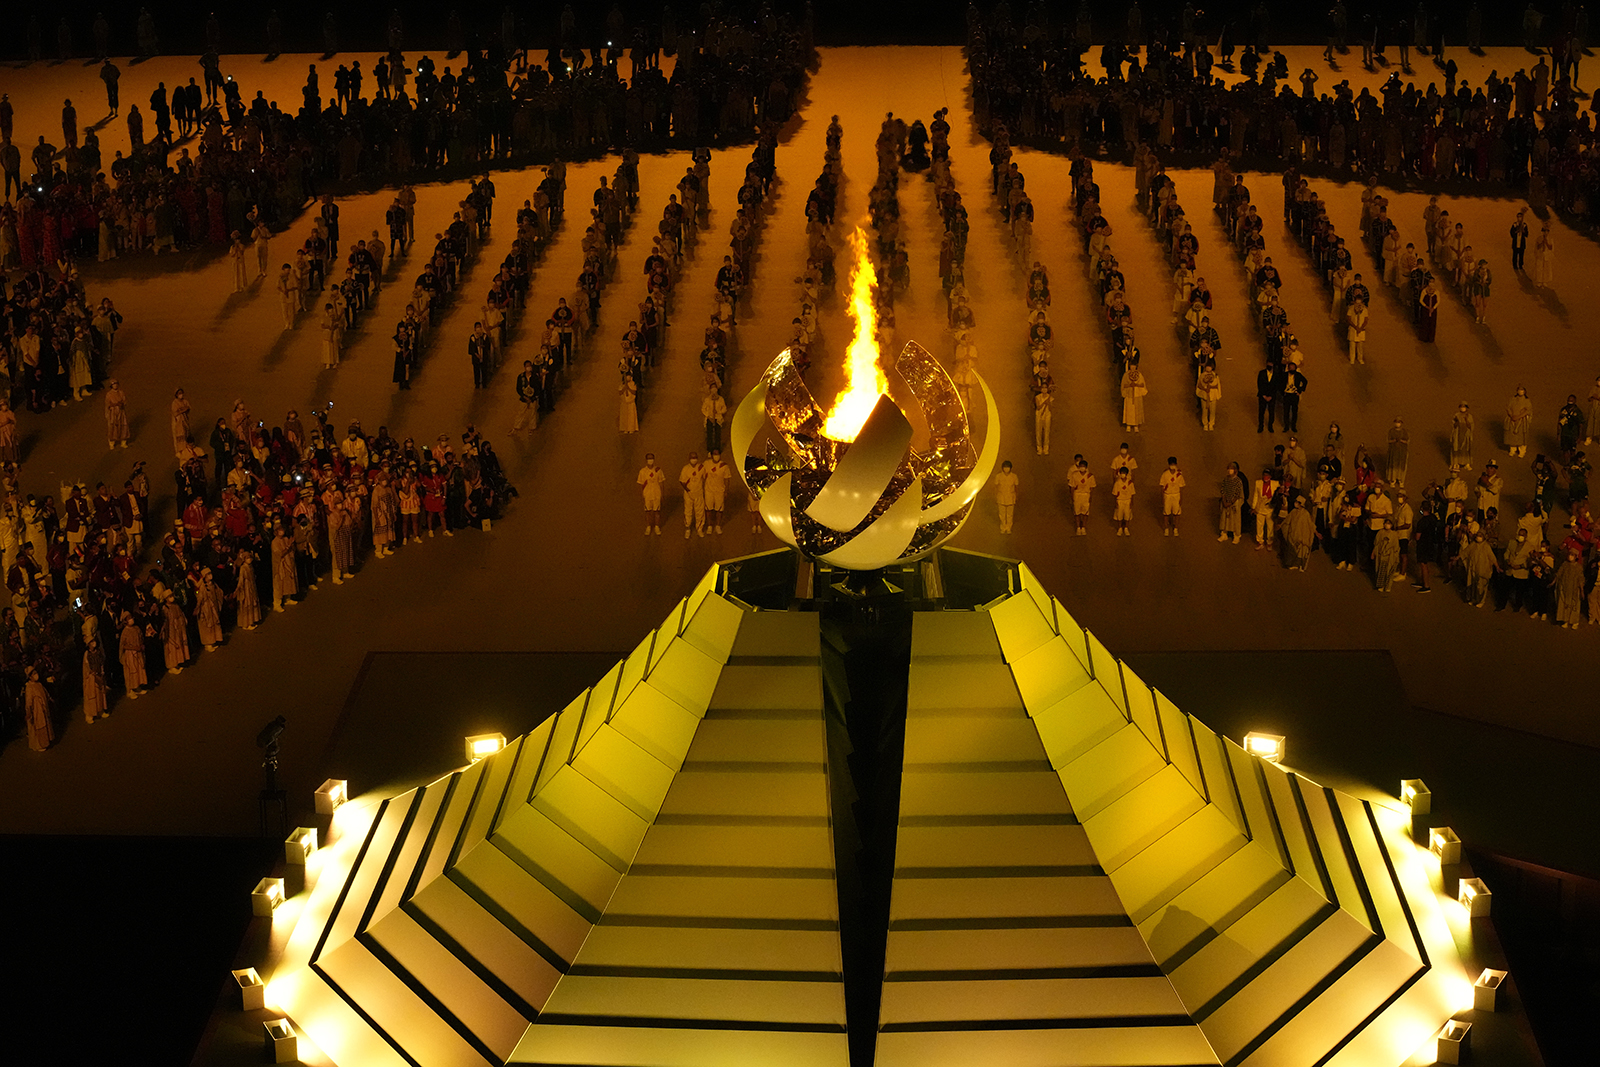 The Olympic flame burns during the opening ceremony in the Olympic Stadium at the 2020 Summer Olympics, July 23, 2021, in Tokyo. (AP Photo/Lee Jin-man)